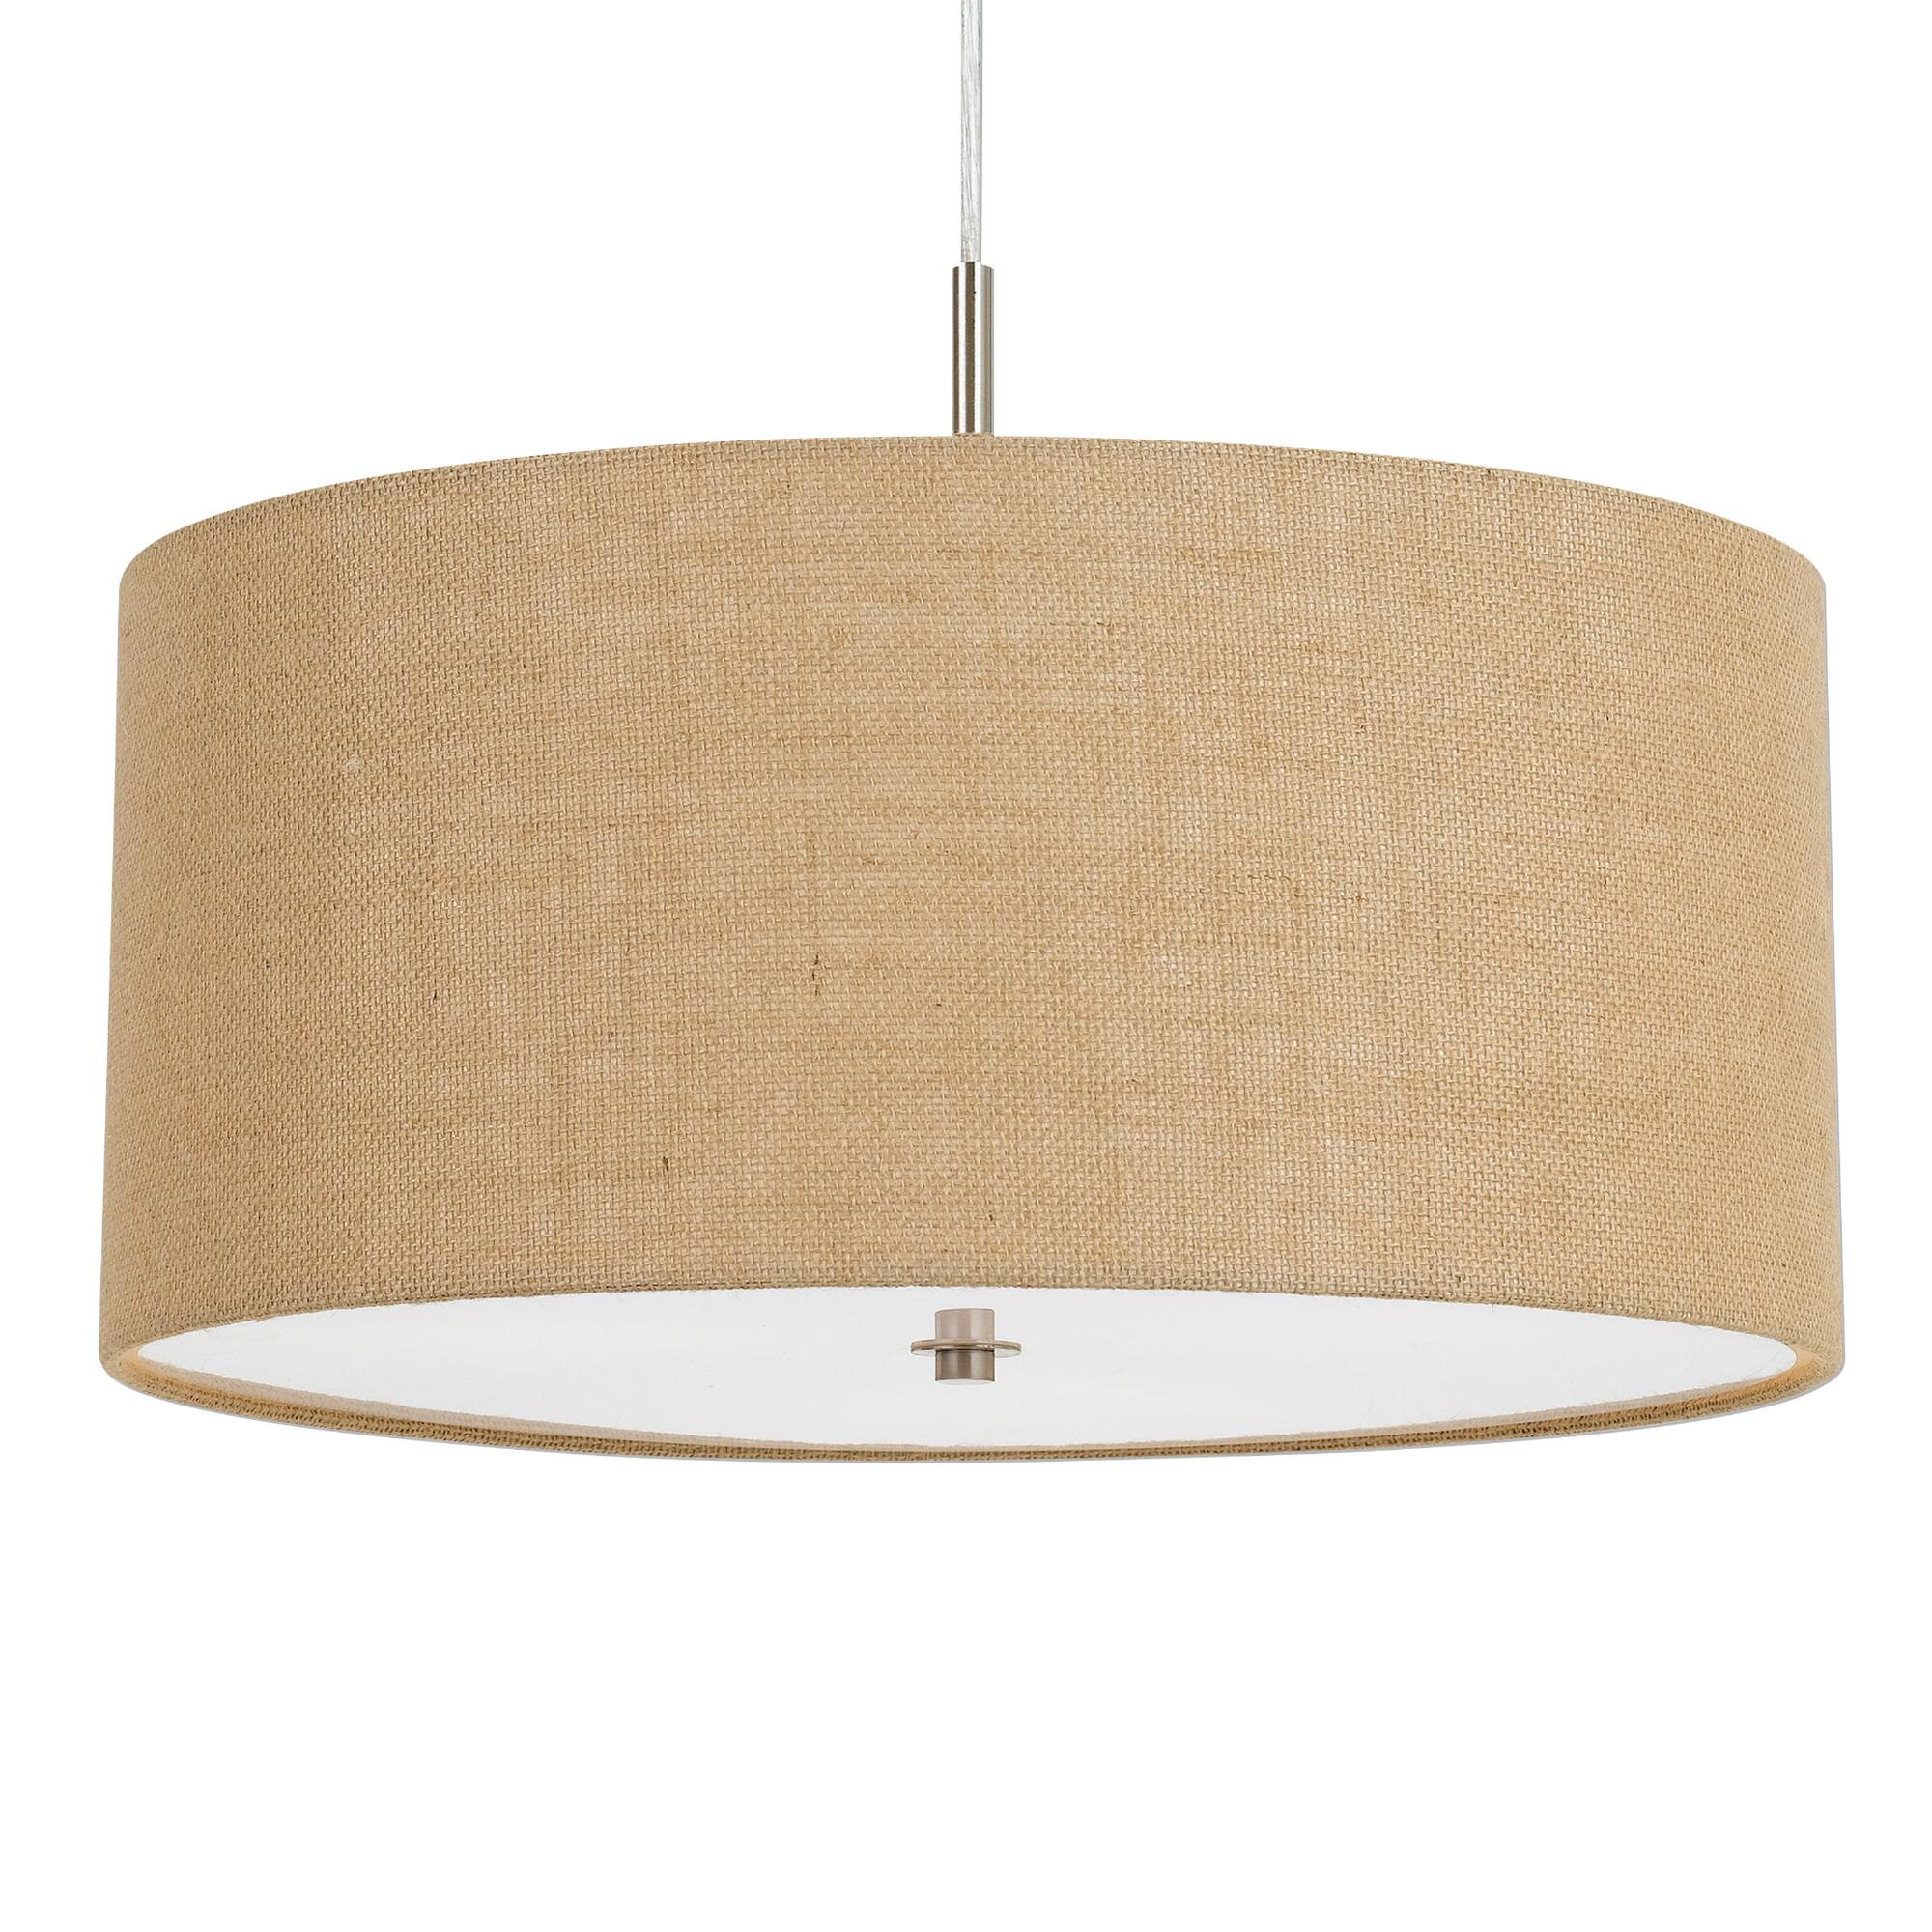 Small Natural Burlap Drum 3 Light Billie Pendant Lamp by World Market